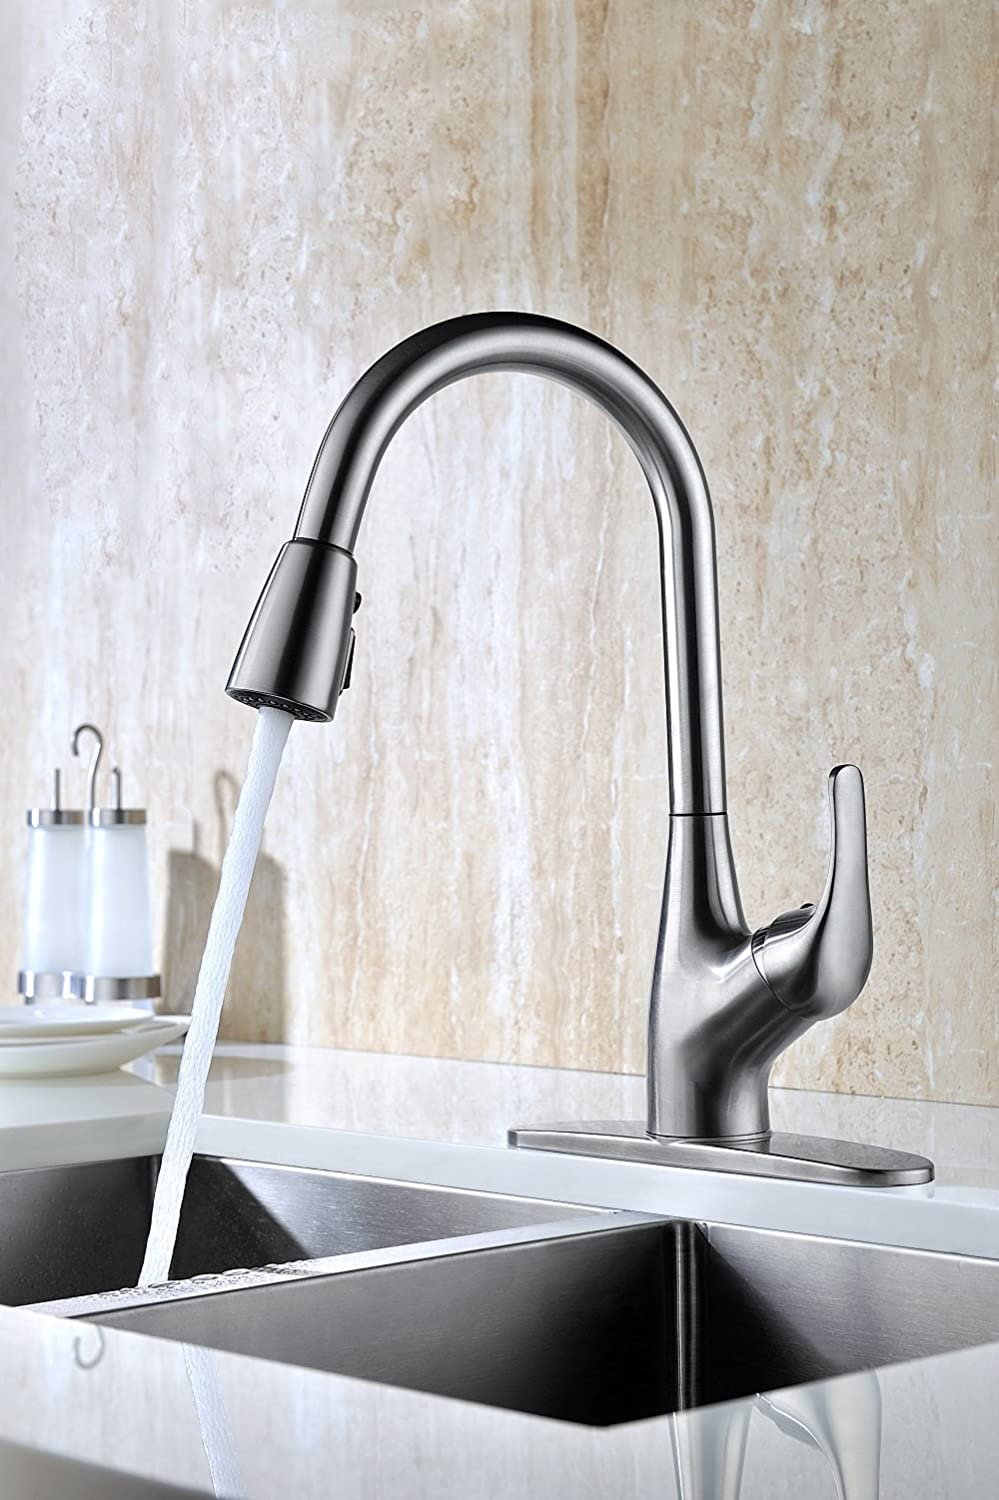 Purelux Tulip Single Handle Pull Down Kitchen Sink Faucet With Deck Plate,  Brushed Nickel Pull Out Kitchen Faucets With Sprayer High Arc Design      Amazon. ...